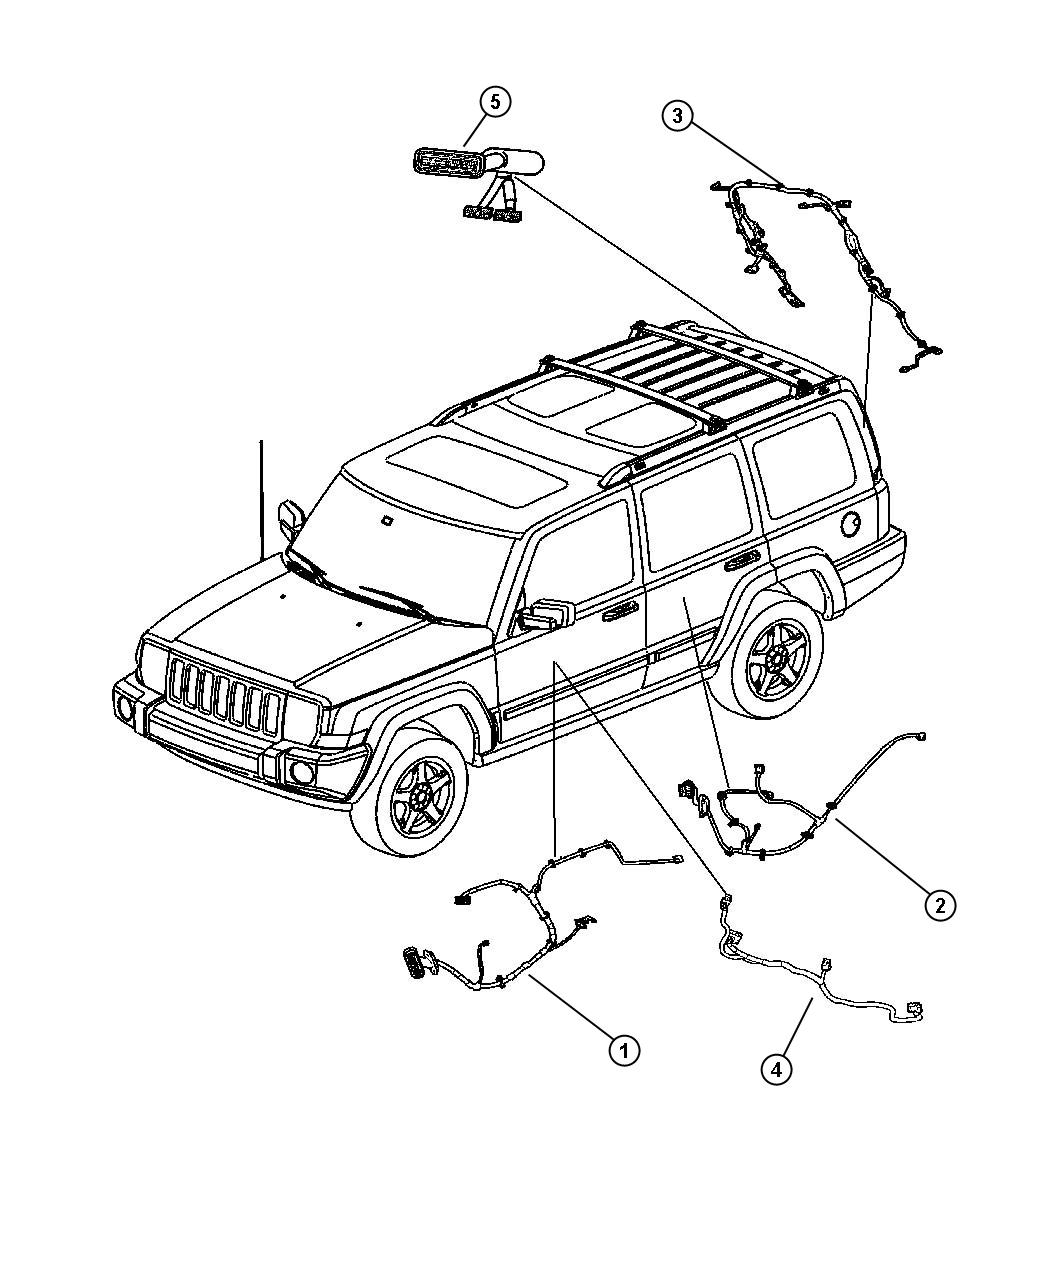 tags: #jeep grand cherokee wiring diagram#willys wagon wiring diagram#jeep  liberty wiring diagram#t j#1994 jeep wrangler wiring diagram#jeep jk wiring